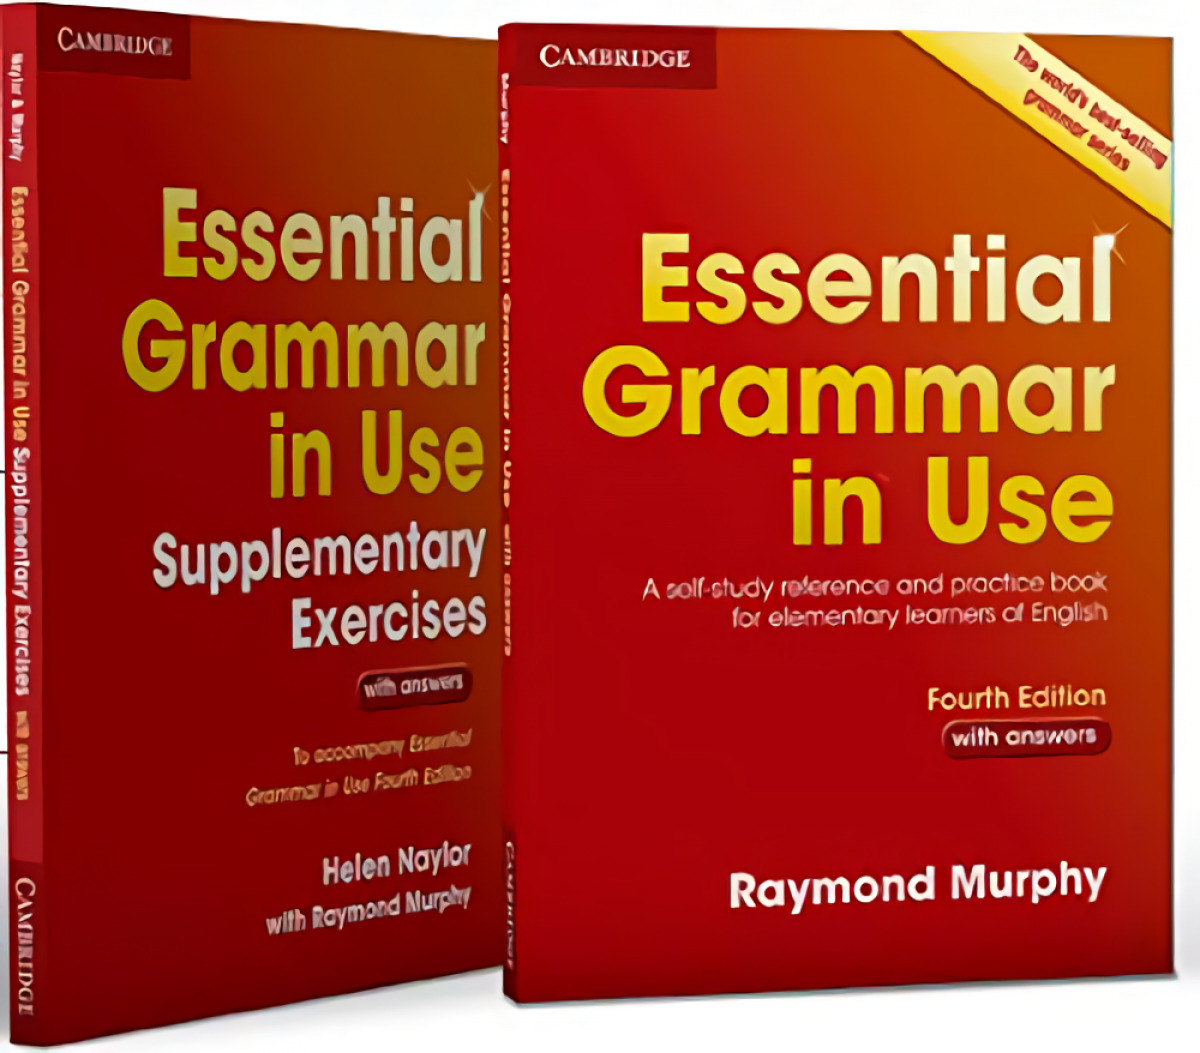 Essential Grammar in Use Fourth edition. Book with Answers and Supplementary Exercises